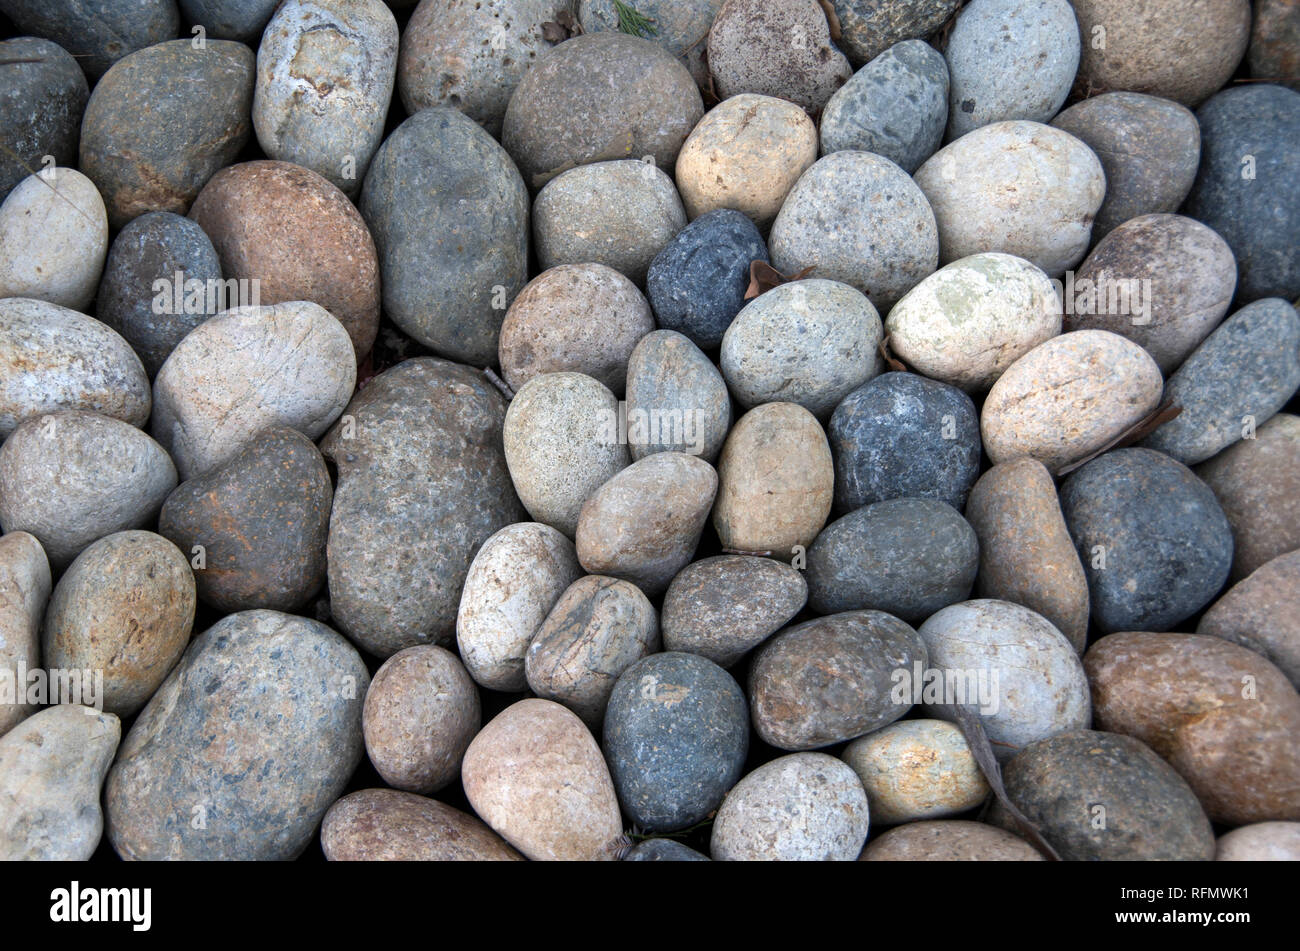 River rocks like these can be used for landscaping in dry climate; they also make a nice border between a sidewalk and city street. Stock Photo